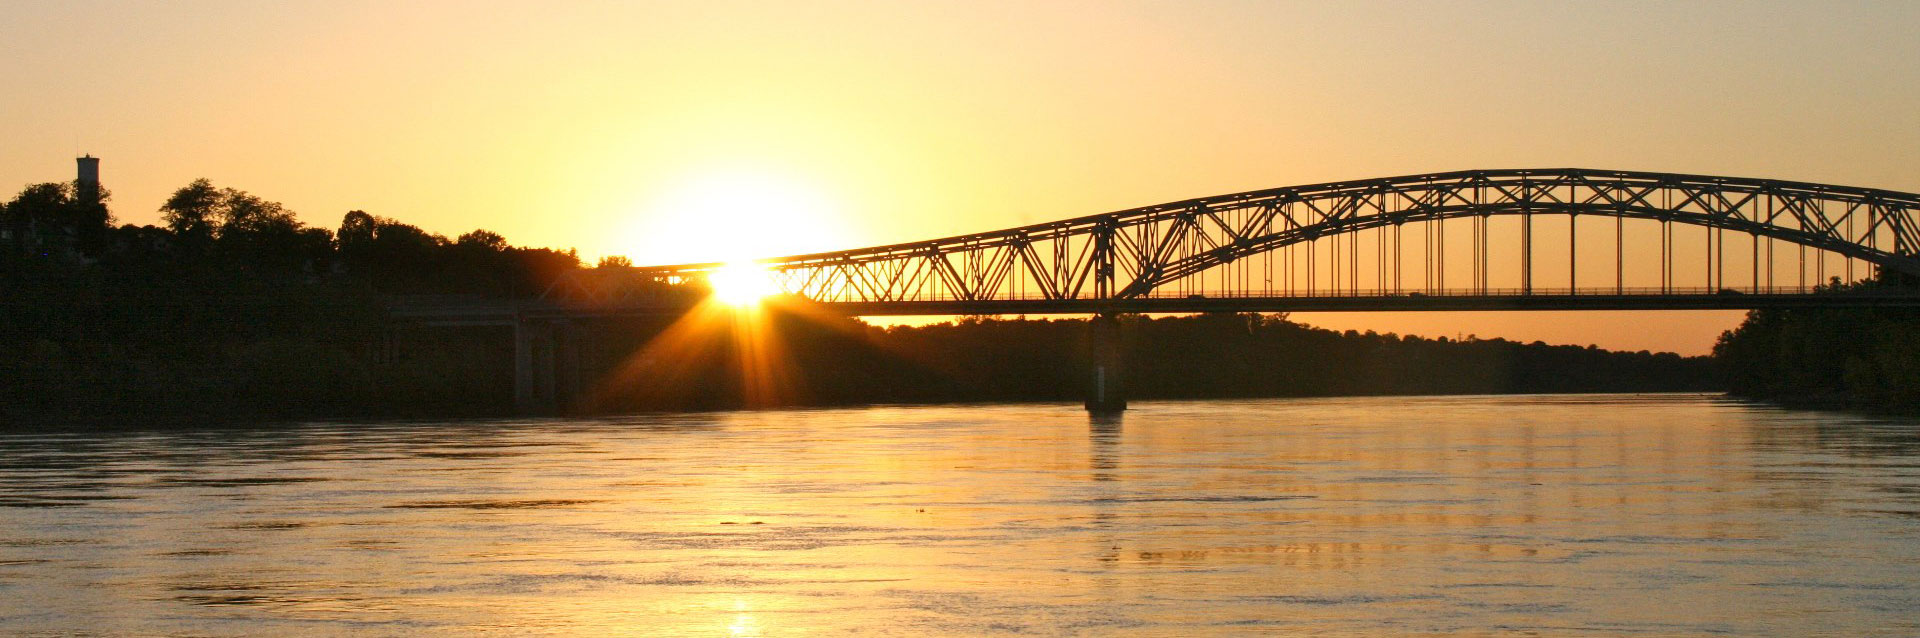 sunsetbridge